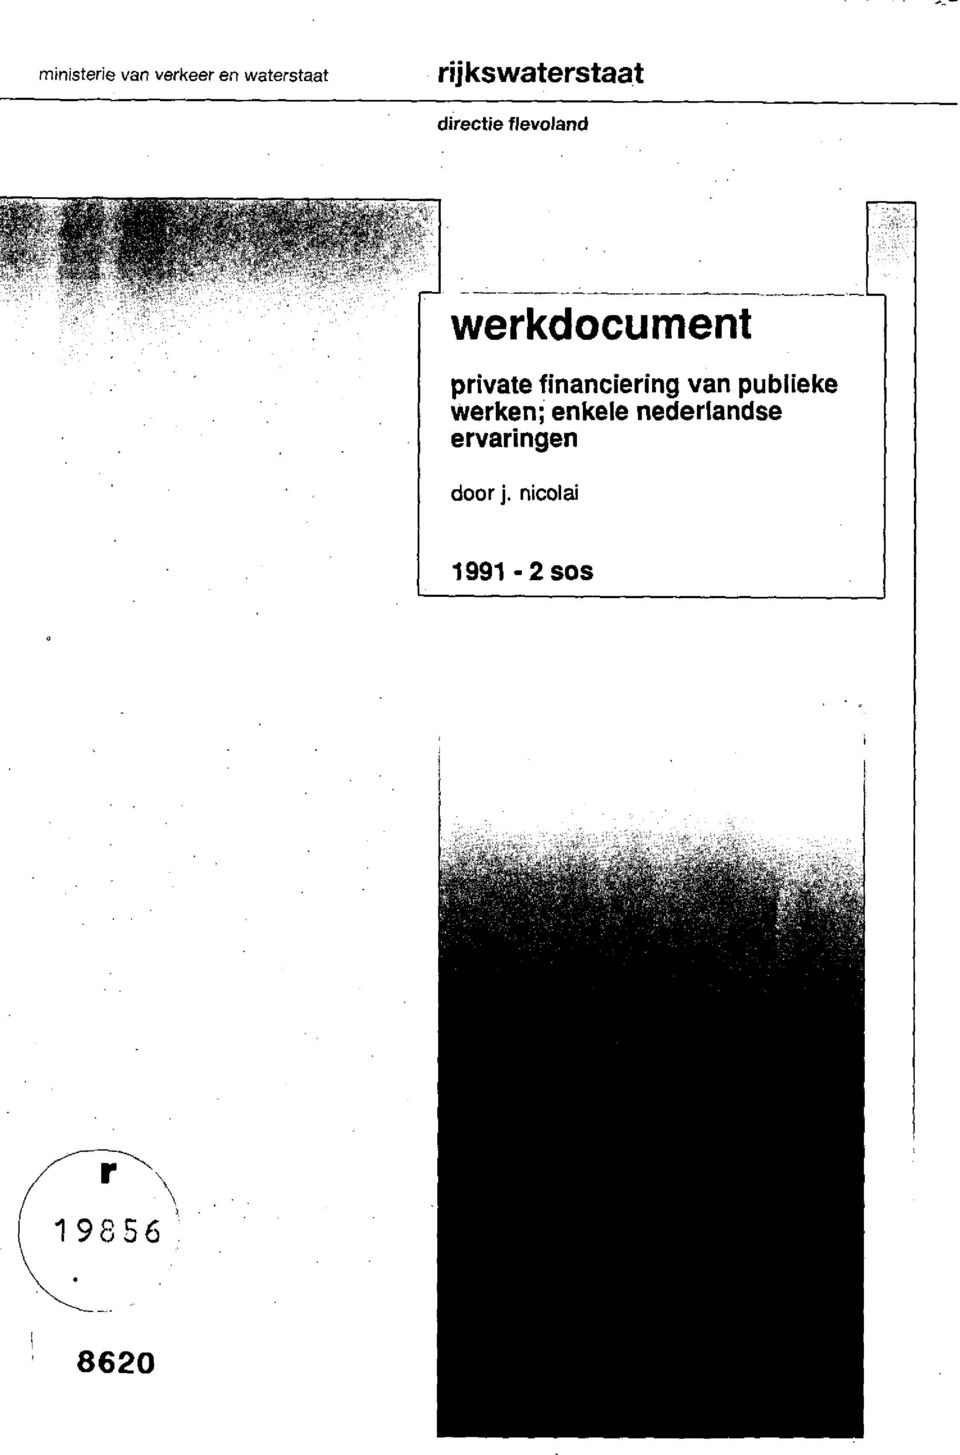 werkdocument private financiering van